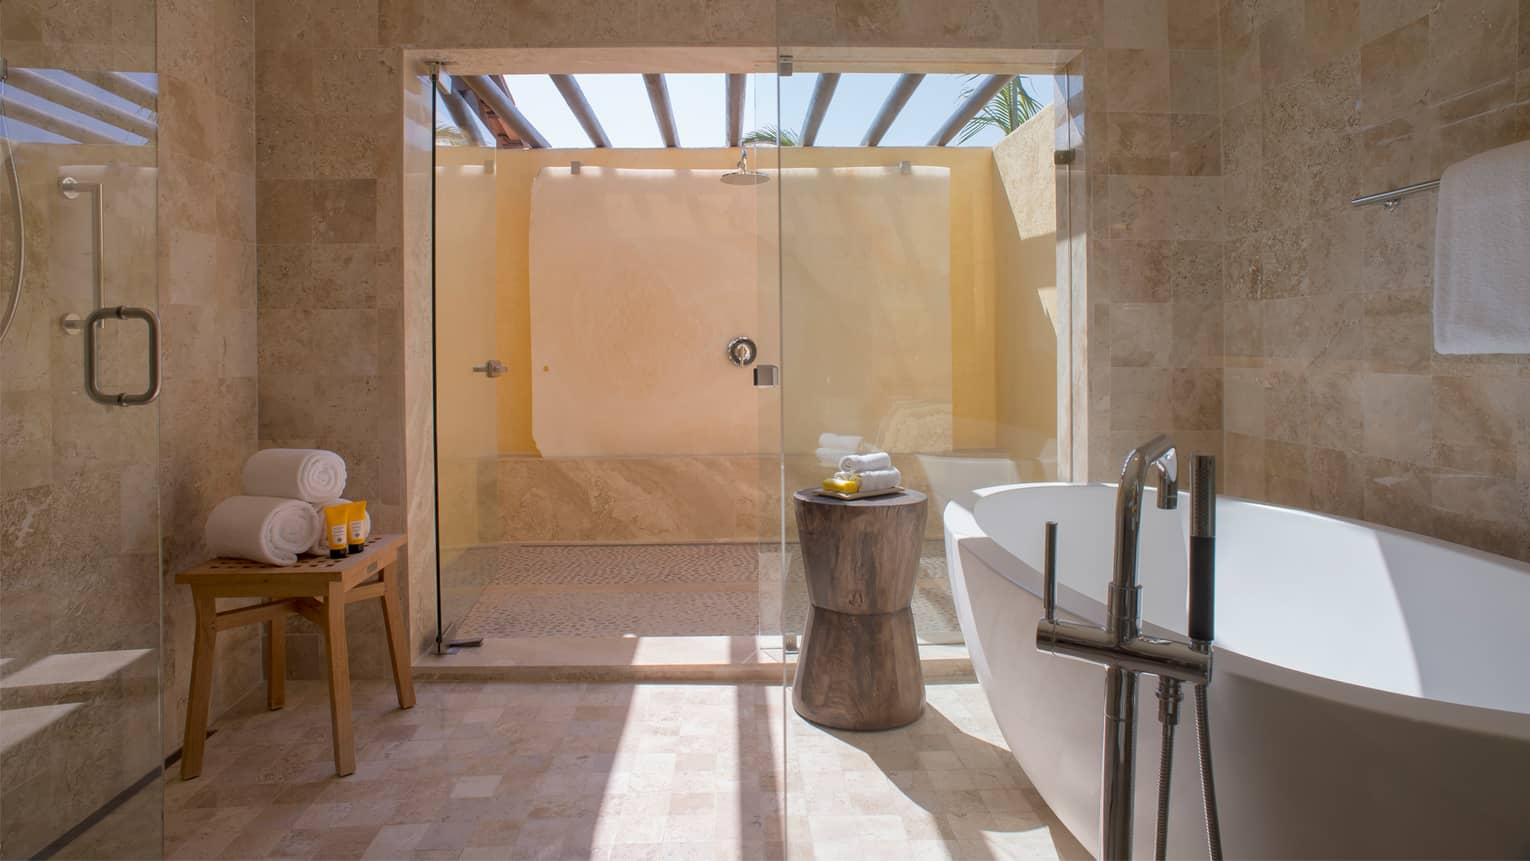 Large outdoor walk-in shower with pink tiles, glass doors, rolled white towels on table